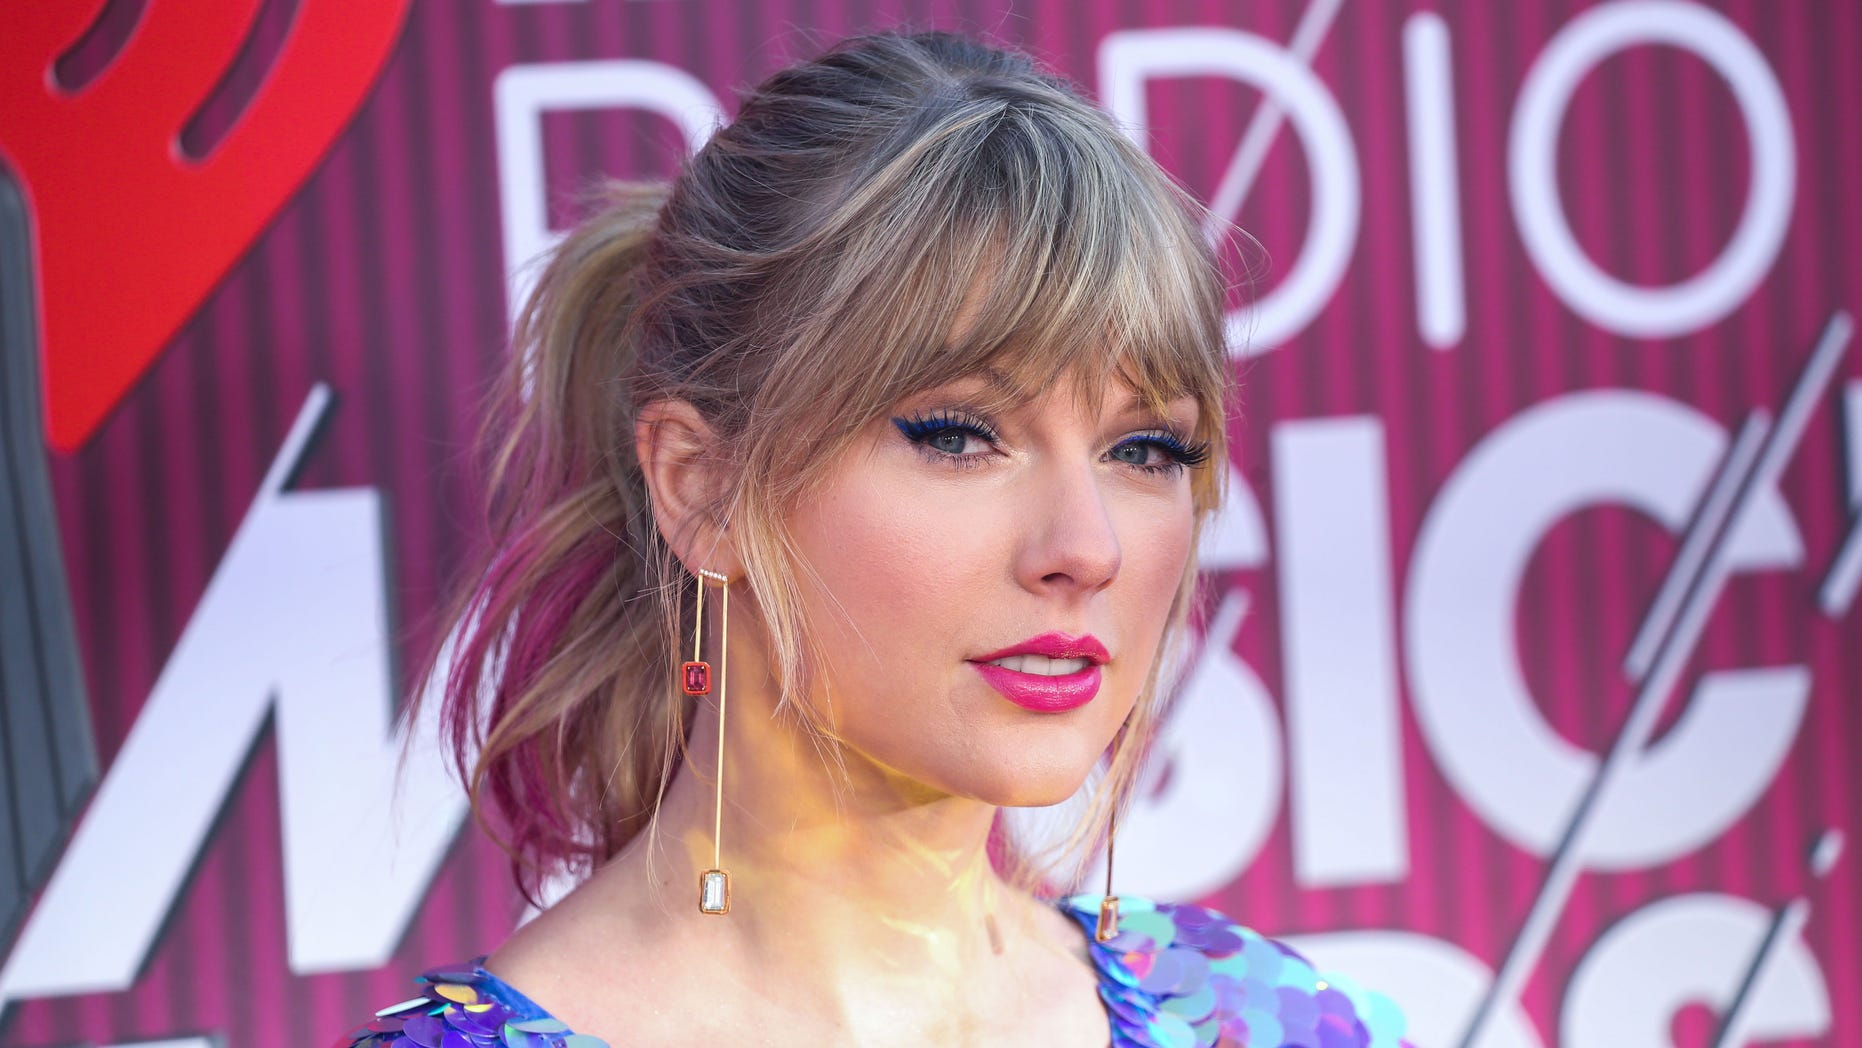 Singer Taylor Swift wearing a Rosa Bloom romper, Sophia Webster shoes, State Property Fine Jewellery earrings, rings by Fernando Jorge, Stefere, Jacquie Aiche, and EF Collection, and an Edie Parker bag arrives at the 2019 iHeartRadio Music Awards held at Microsoft Theater at L.A. Live on March 14, 2019 in Los Angeles, California, United States.